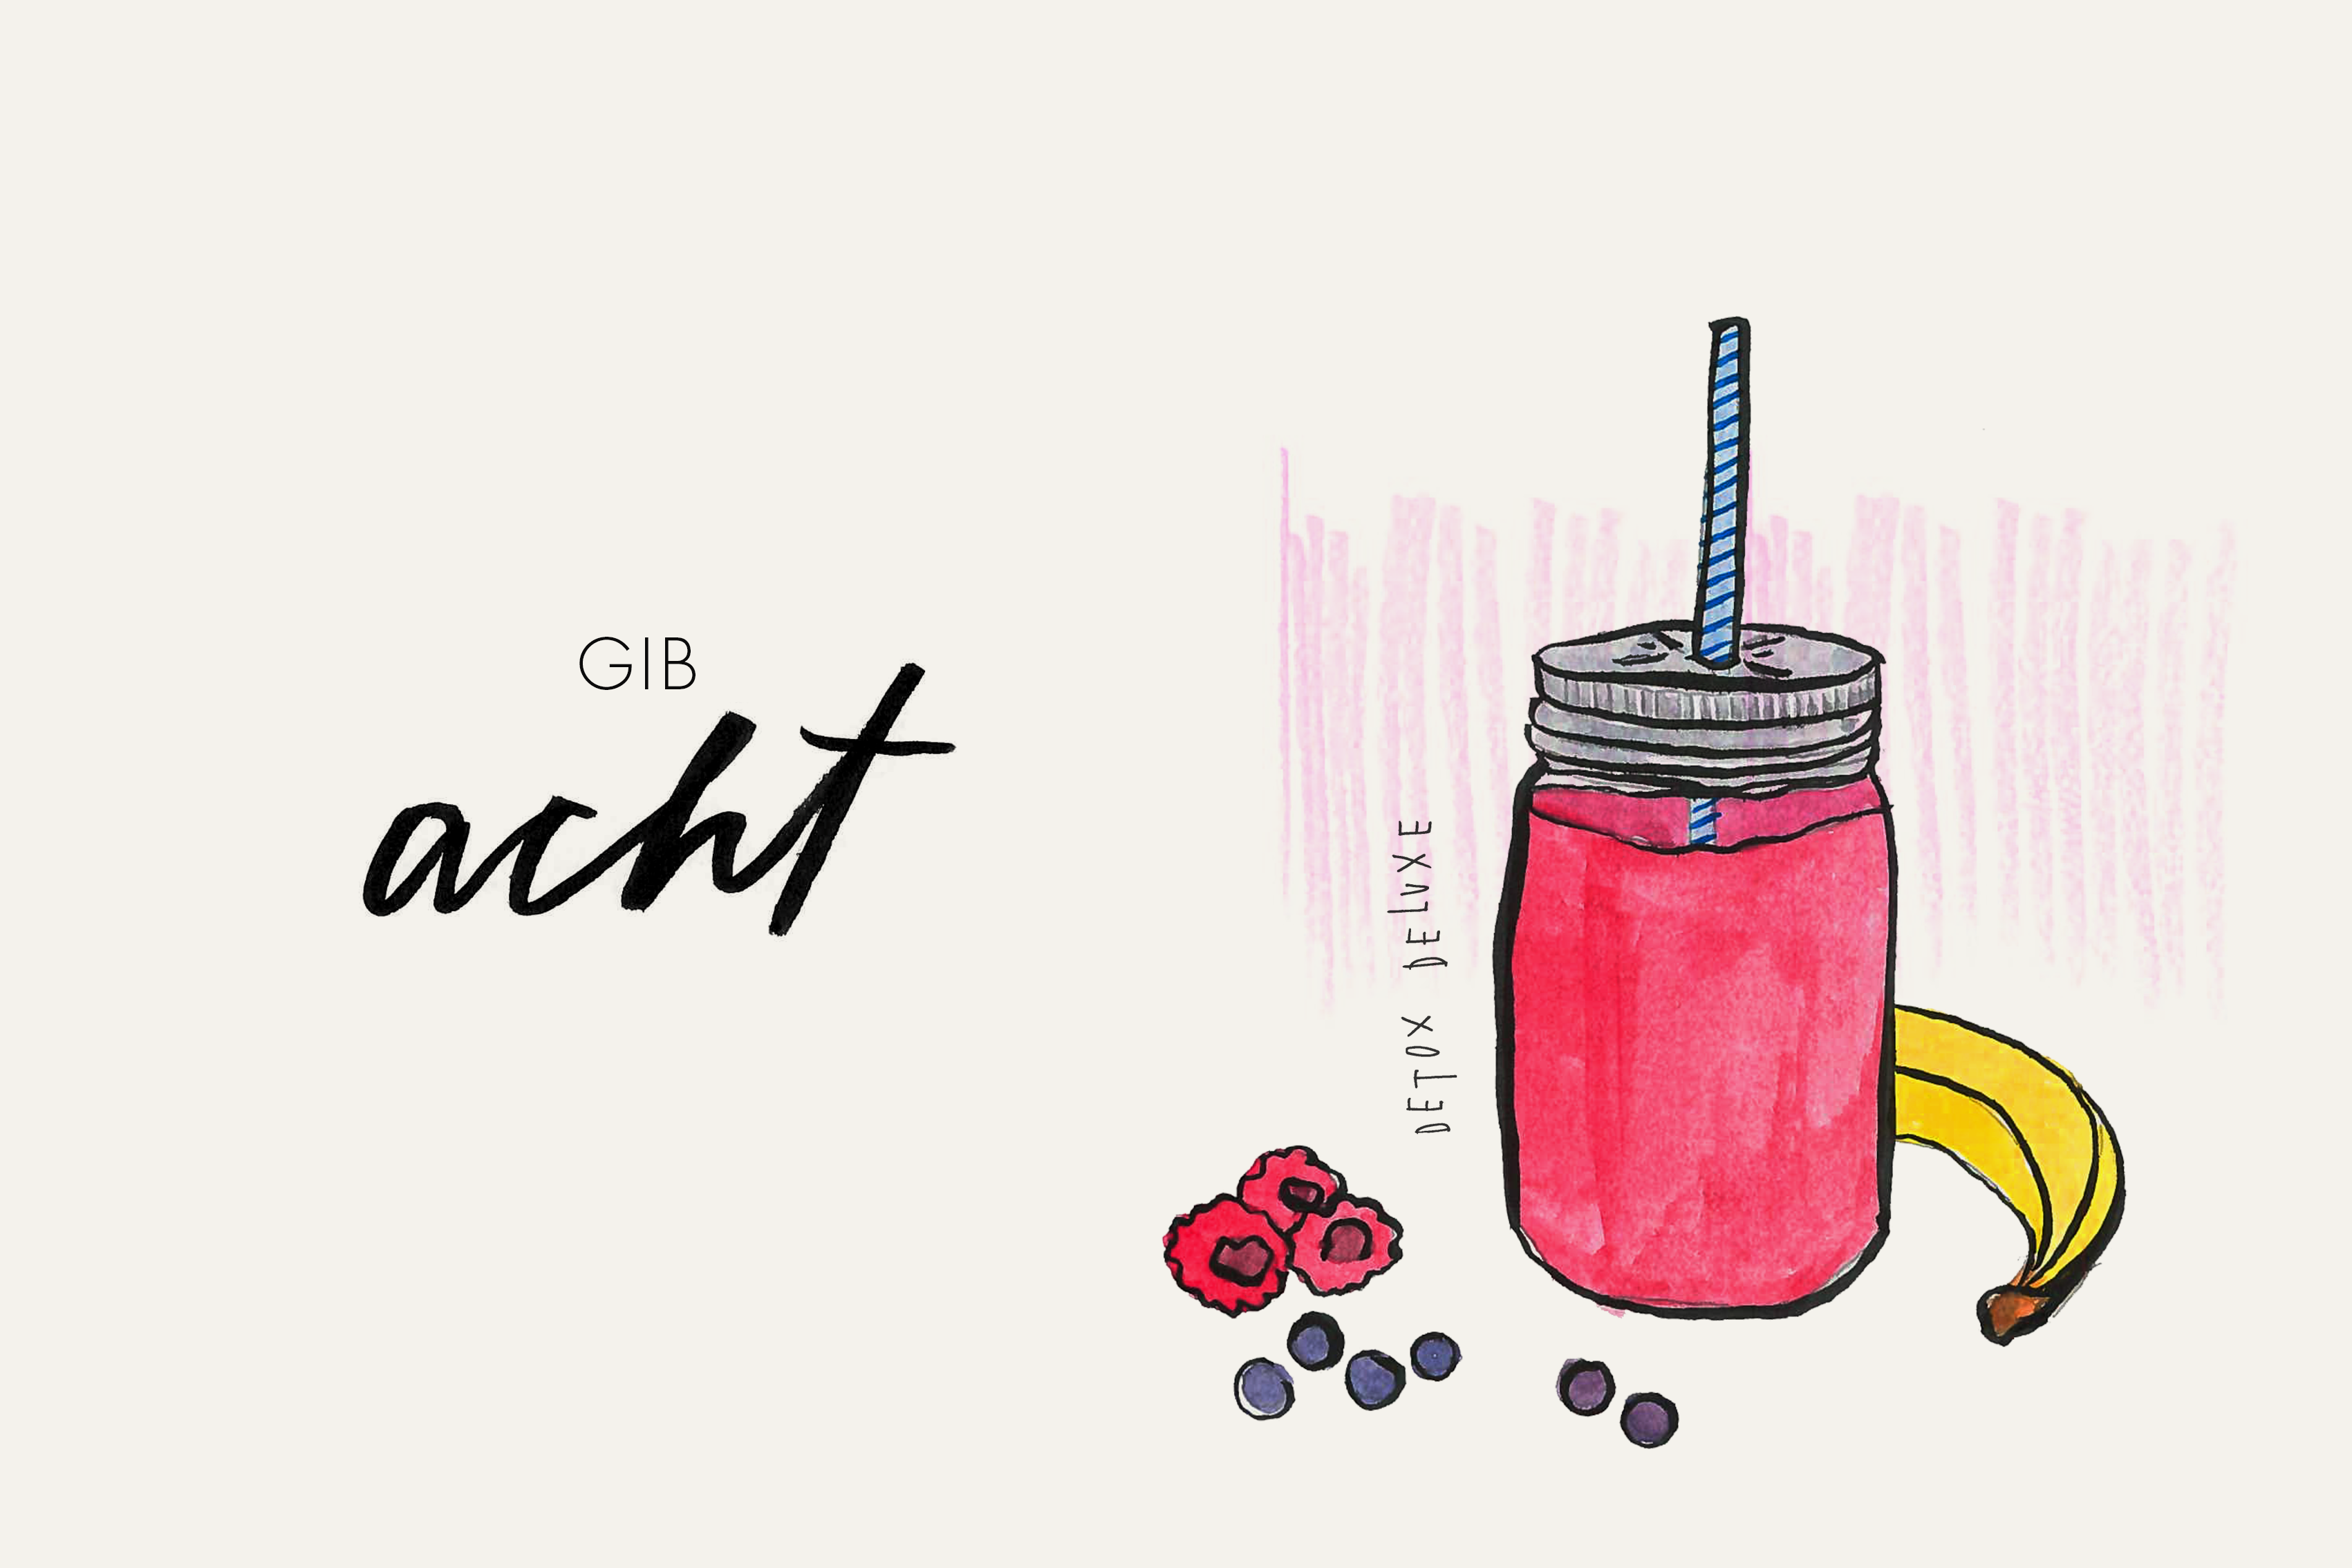 Illustration_Smoothie_Gemuese_Cleaneating